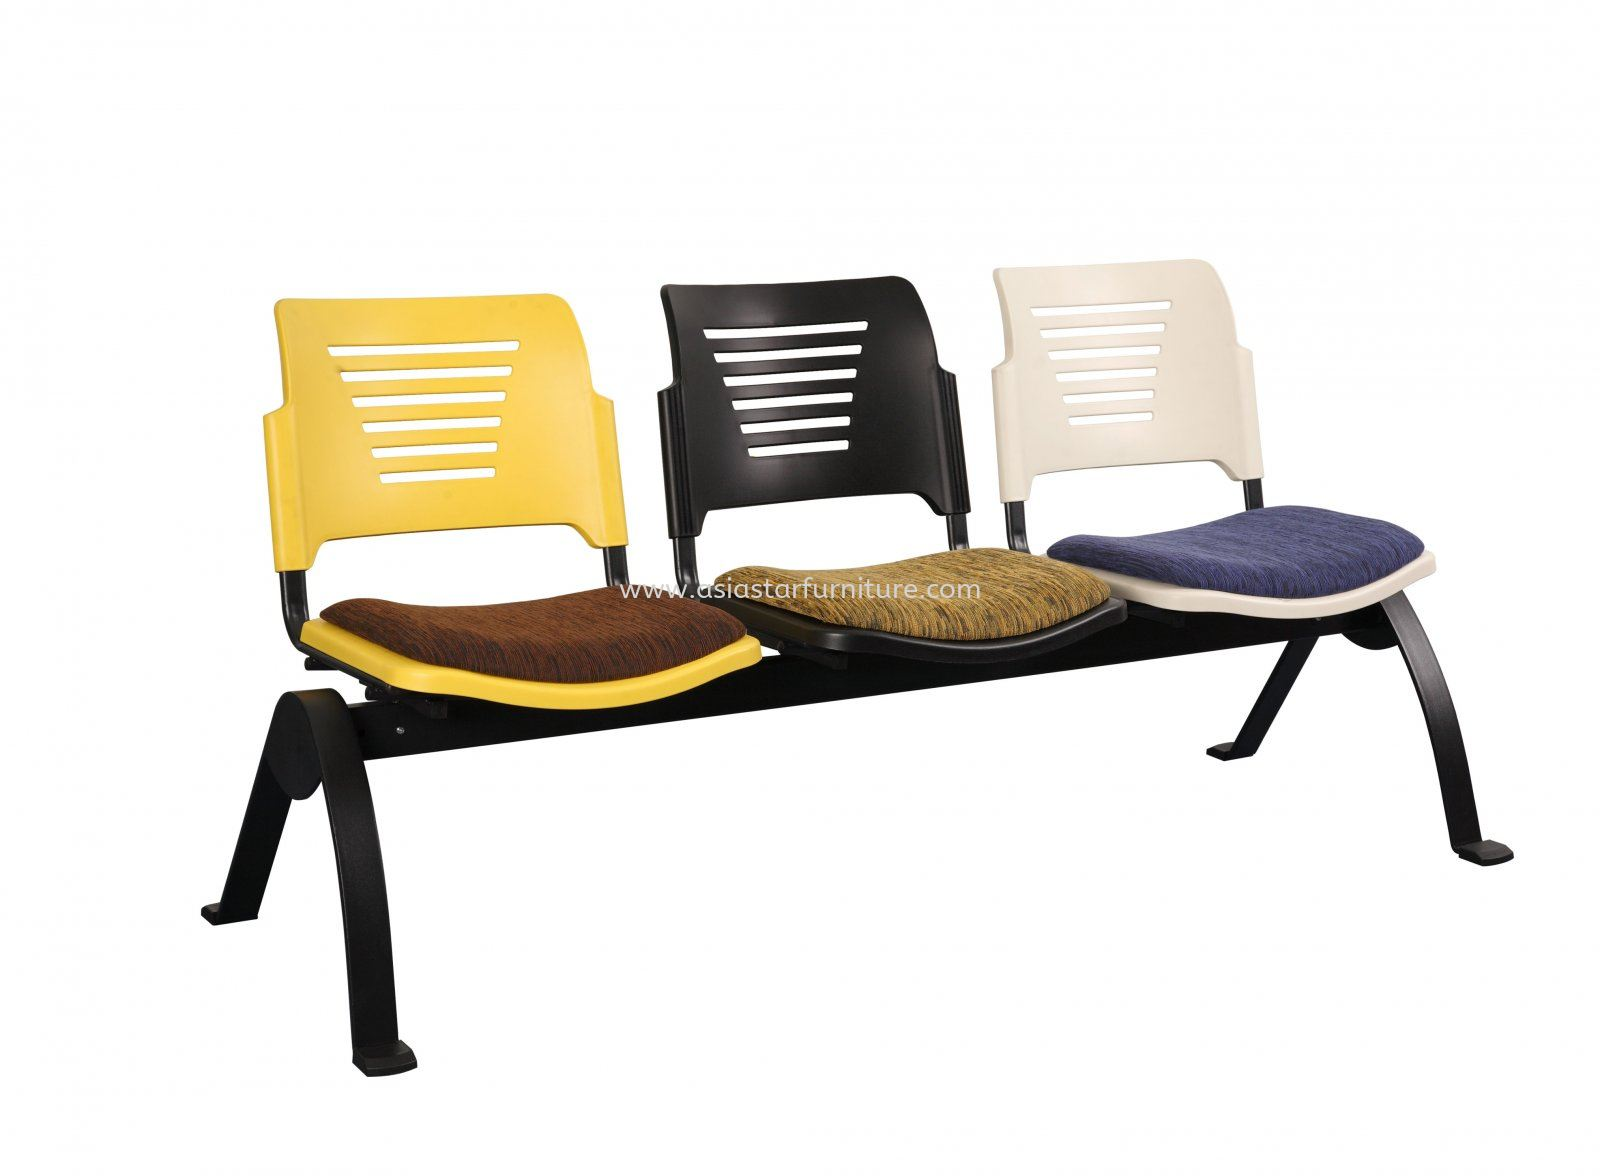 AEXIS PP 3 SEATER LINK CHAIR C/W EPOXY BLACK N-SHAPE METAL BASE ACL 56-3N UF-S